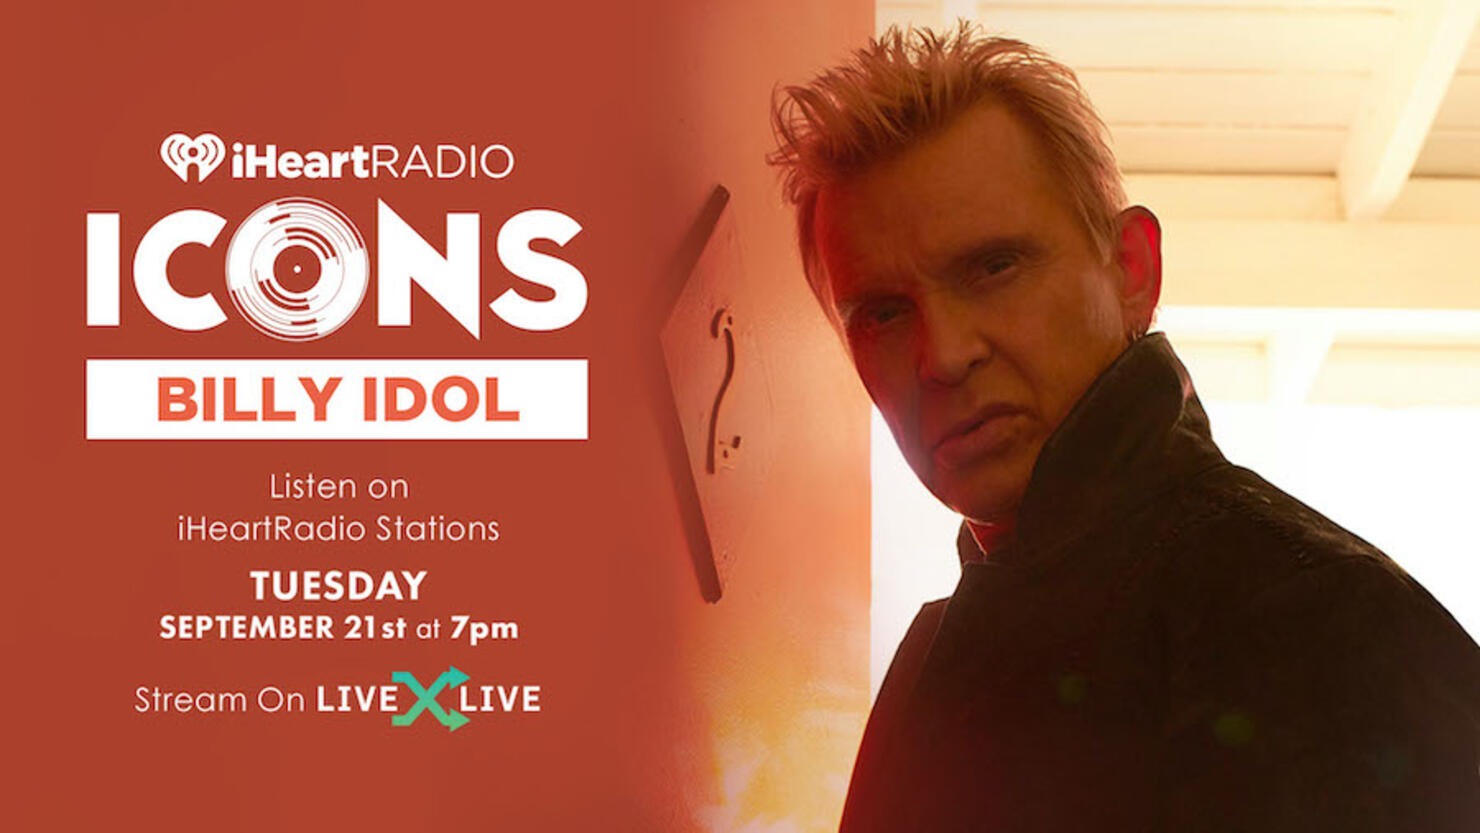 Billy Idol To Celebrate 'The Roadside' During iHeartRadio ICONS Event